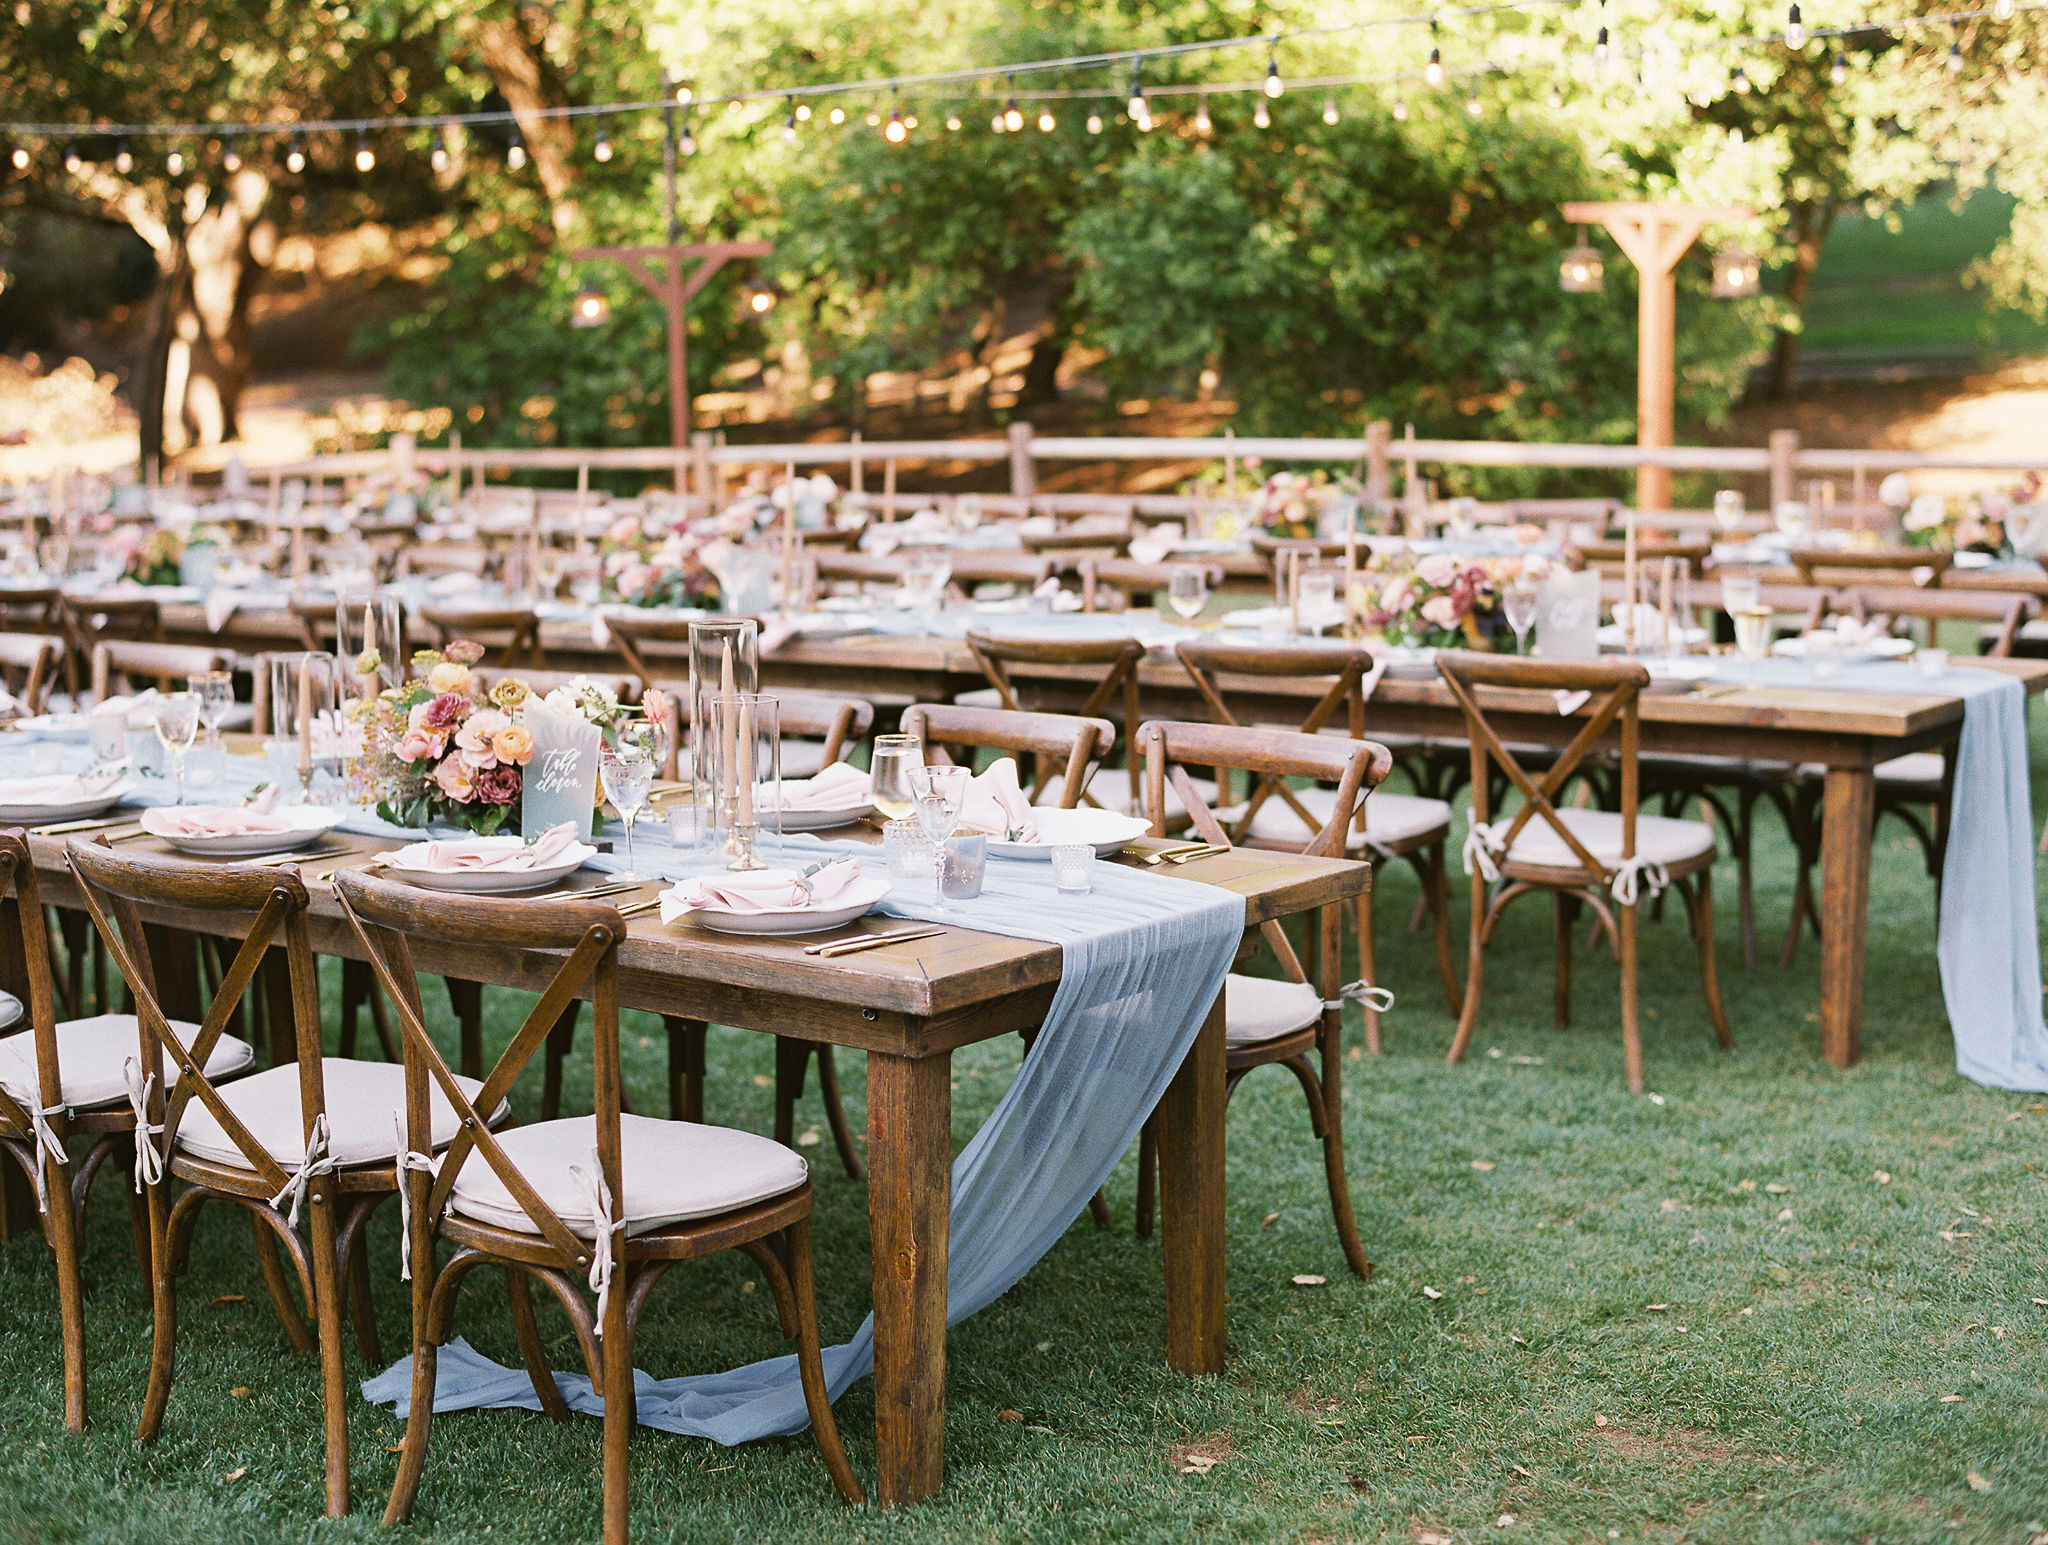 Temecula Boho-Chic Wedding in Dusty Rose and Yellow | Amy Golding Photography | Cara Goset-Michelle Garibay Events